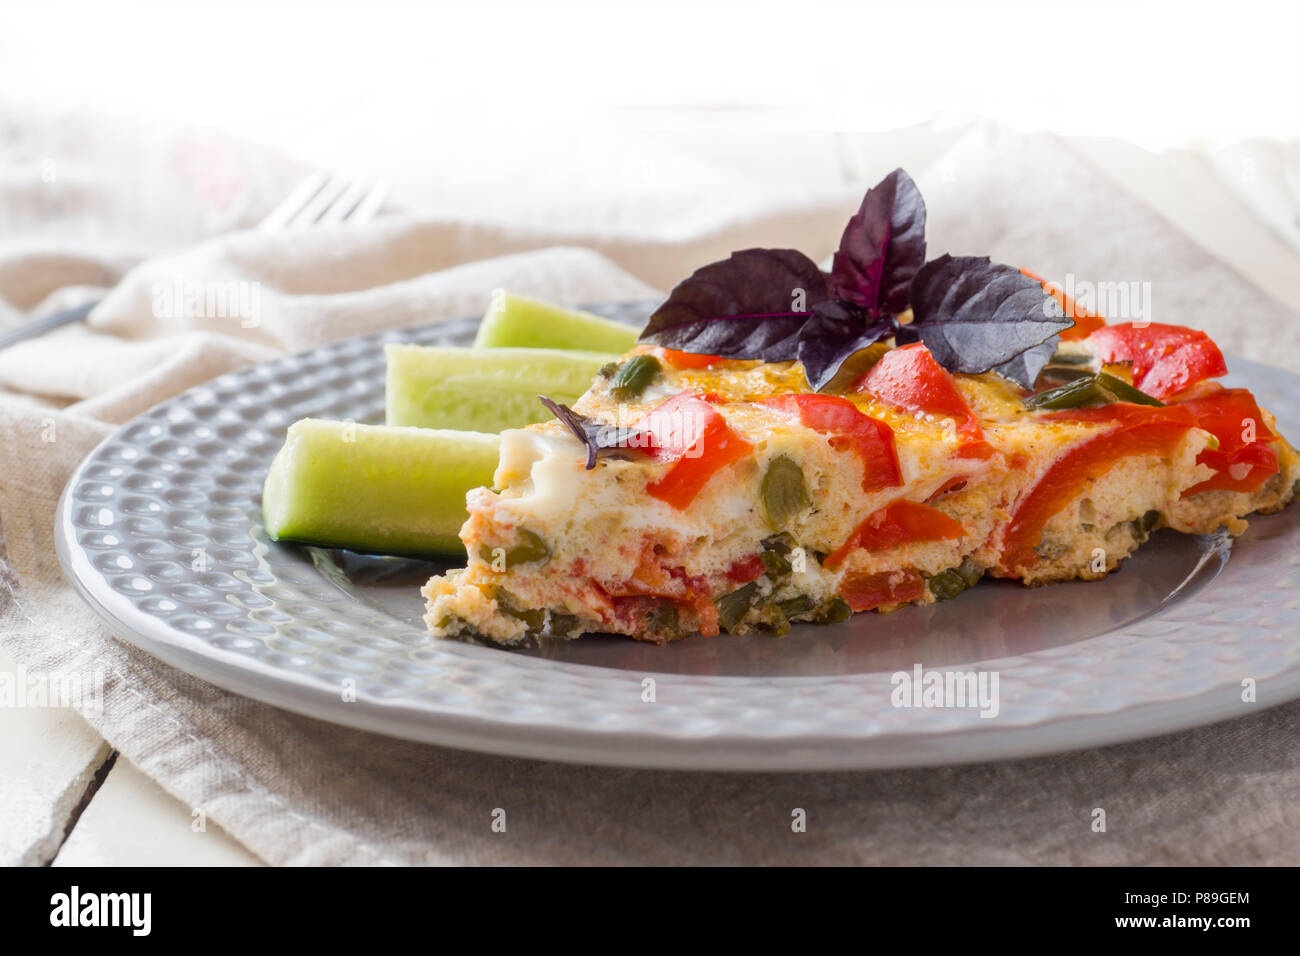 Omelet serving with vegetables on a plate on a white wooden table. - Stock Image